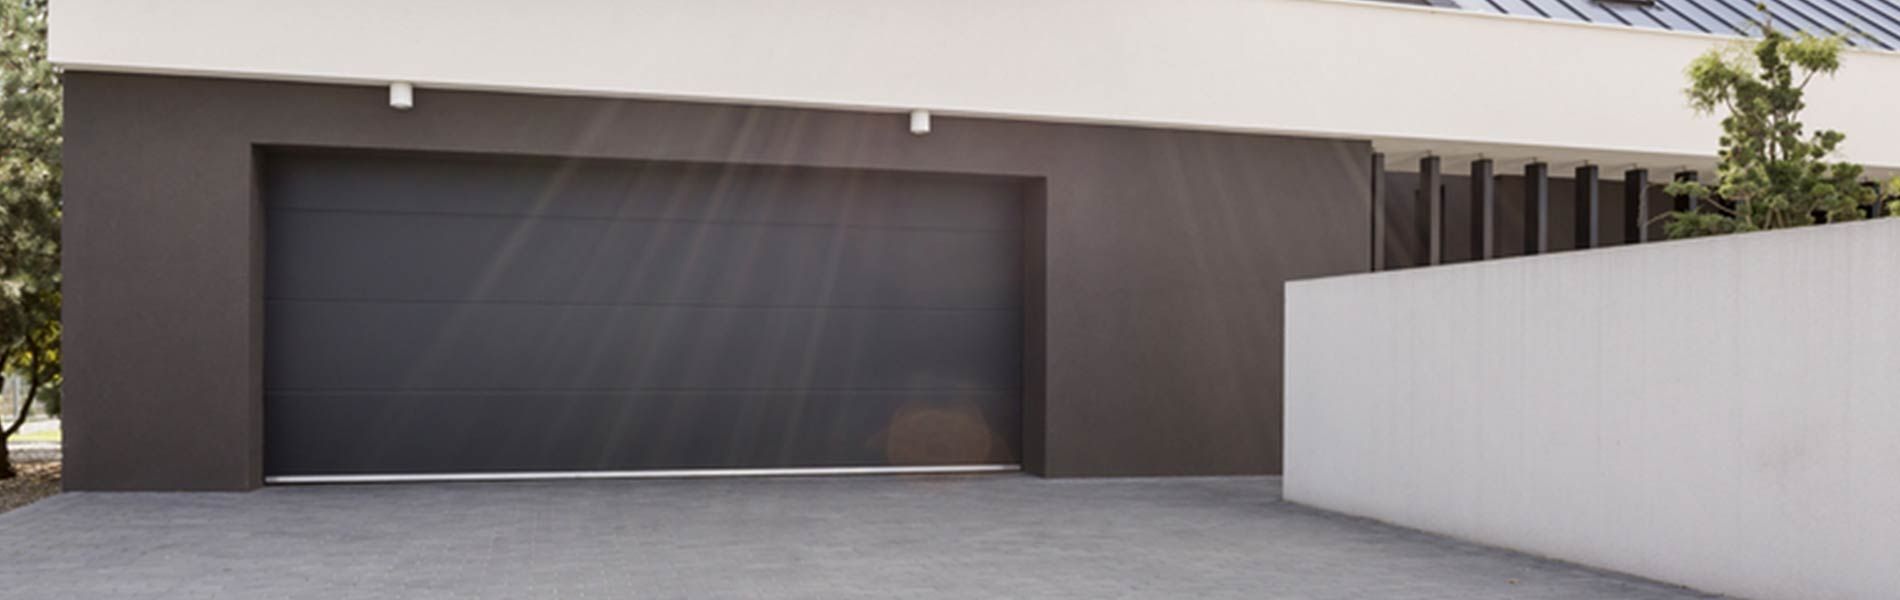 Exclusive Garage Door Service Buffalo Grove, IL 847-616-2094